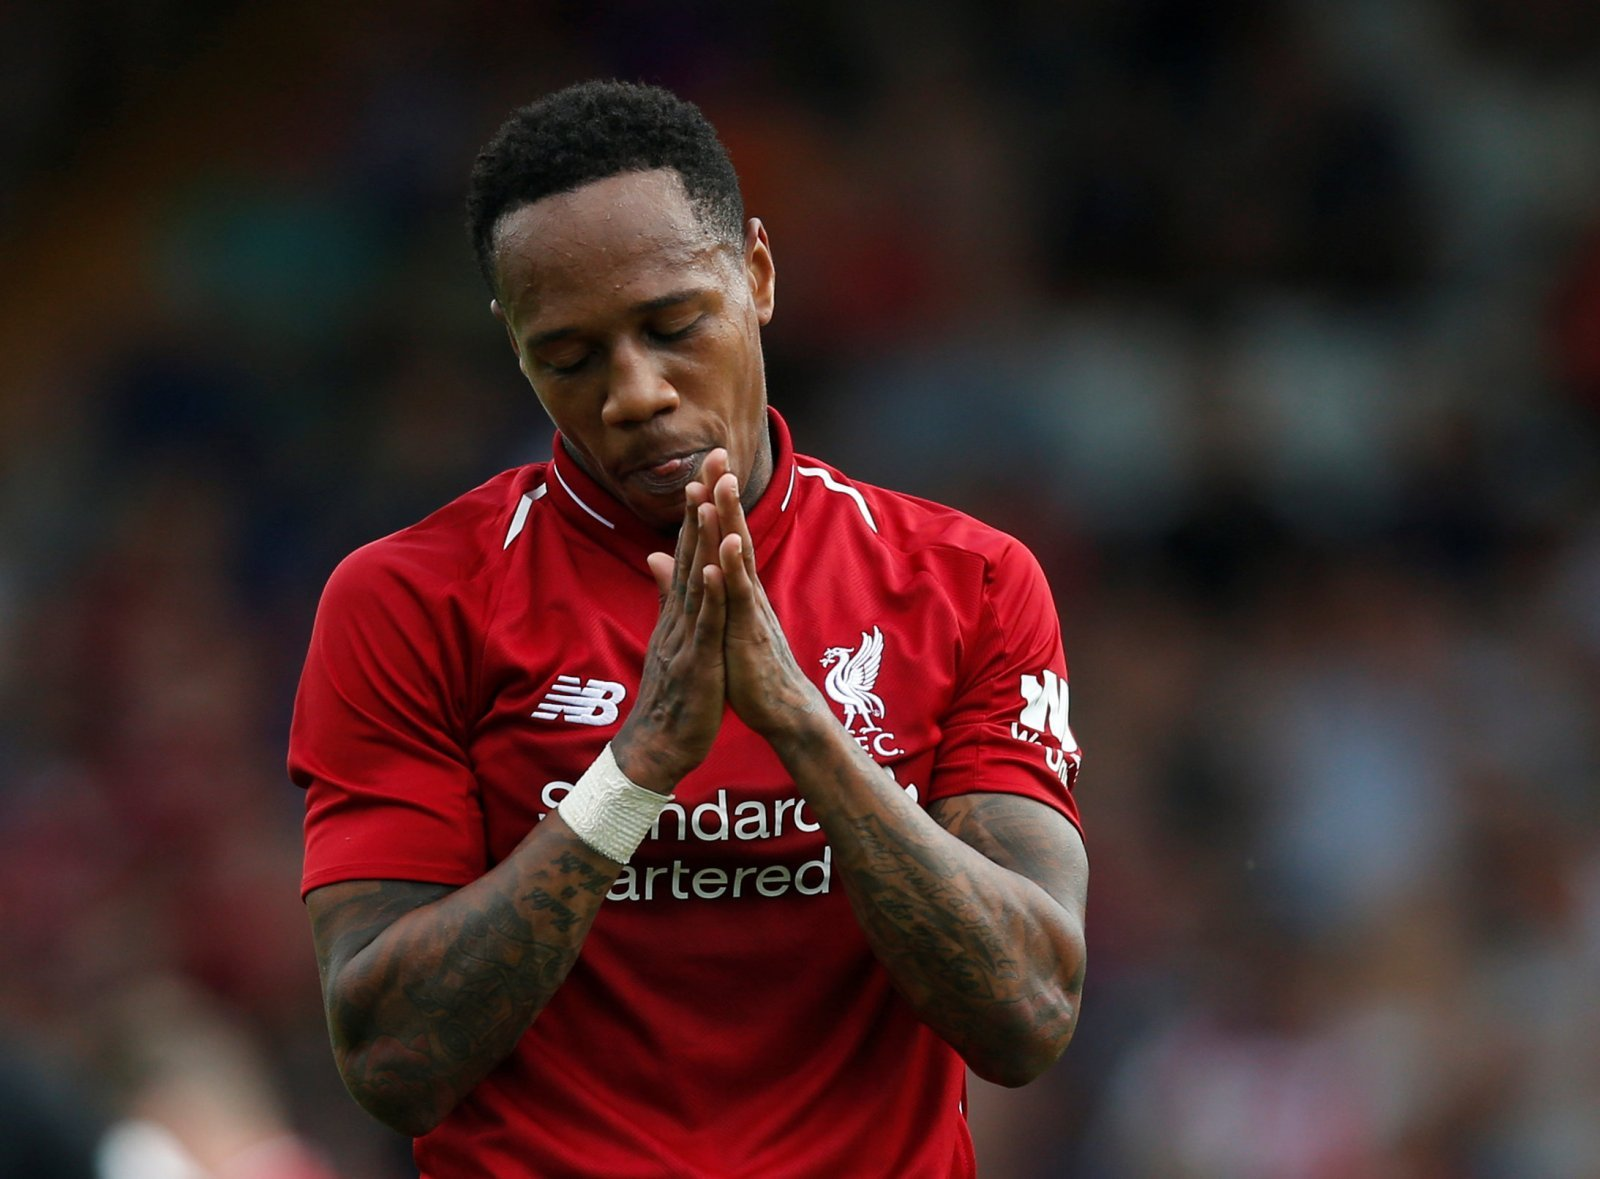 Nathaniel Clyne deserves to be playing and Fulham would be a perfect home for him